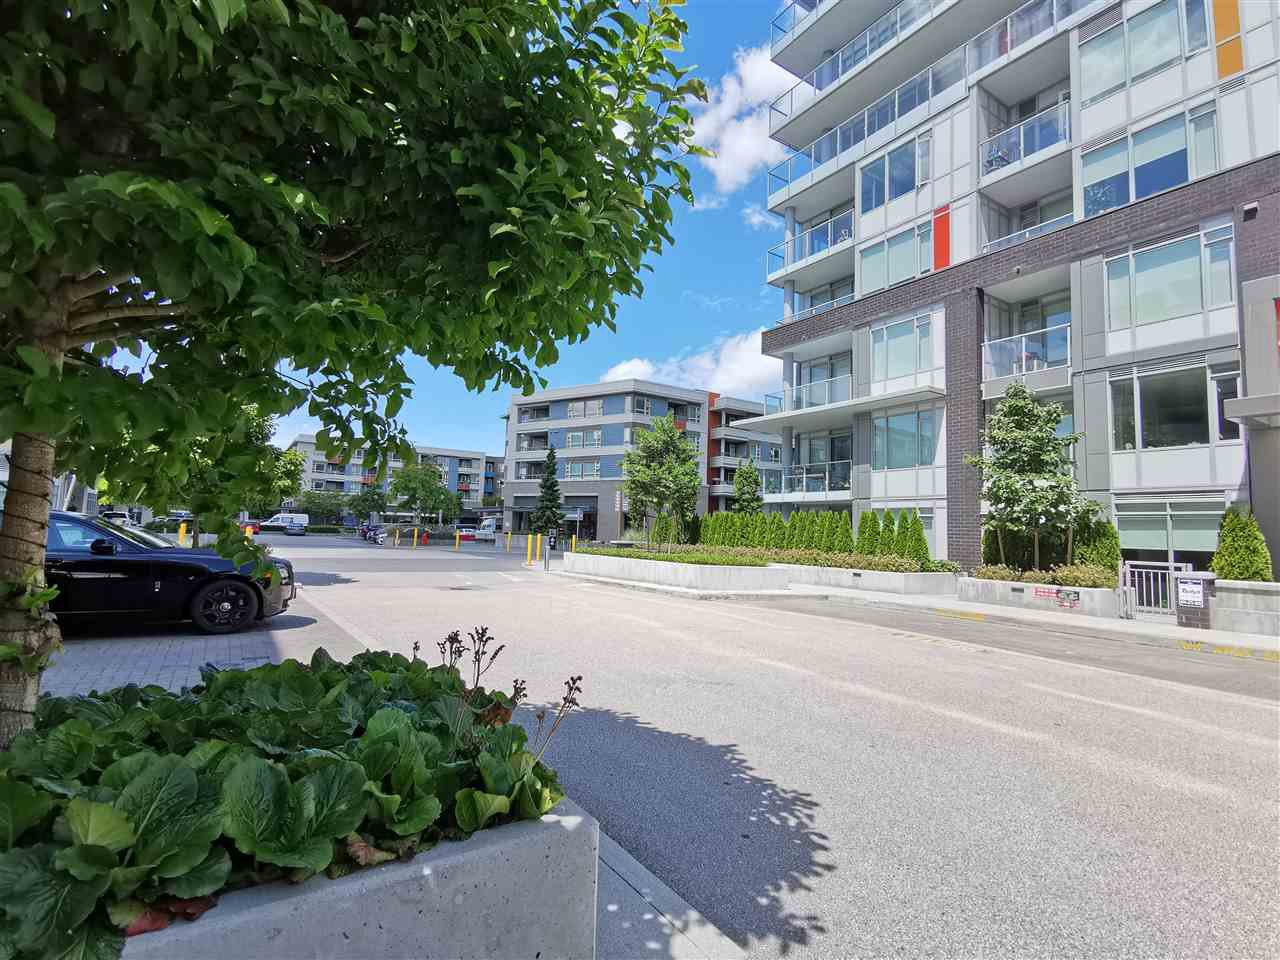 Main Photo: 112 10780 NO. 5 Road in Richmond: Ironwood Condo for sale : MLS®# R2463580